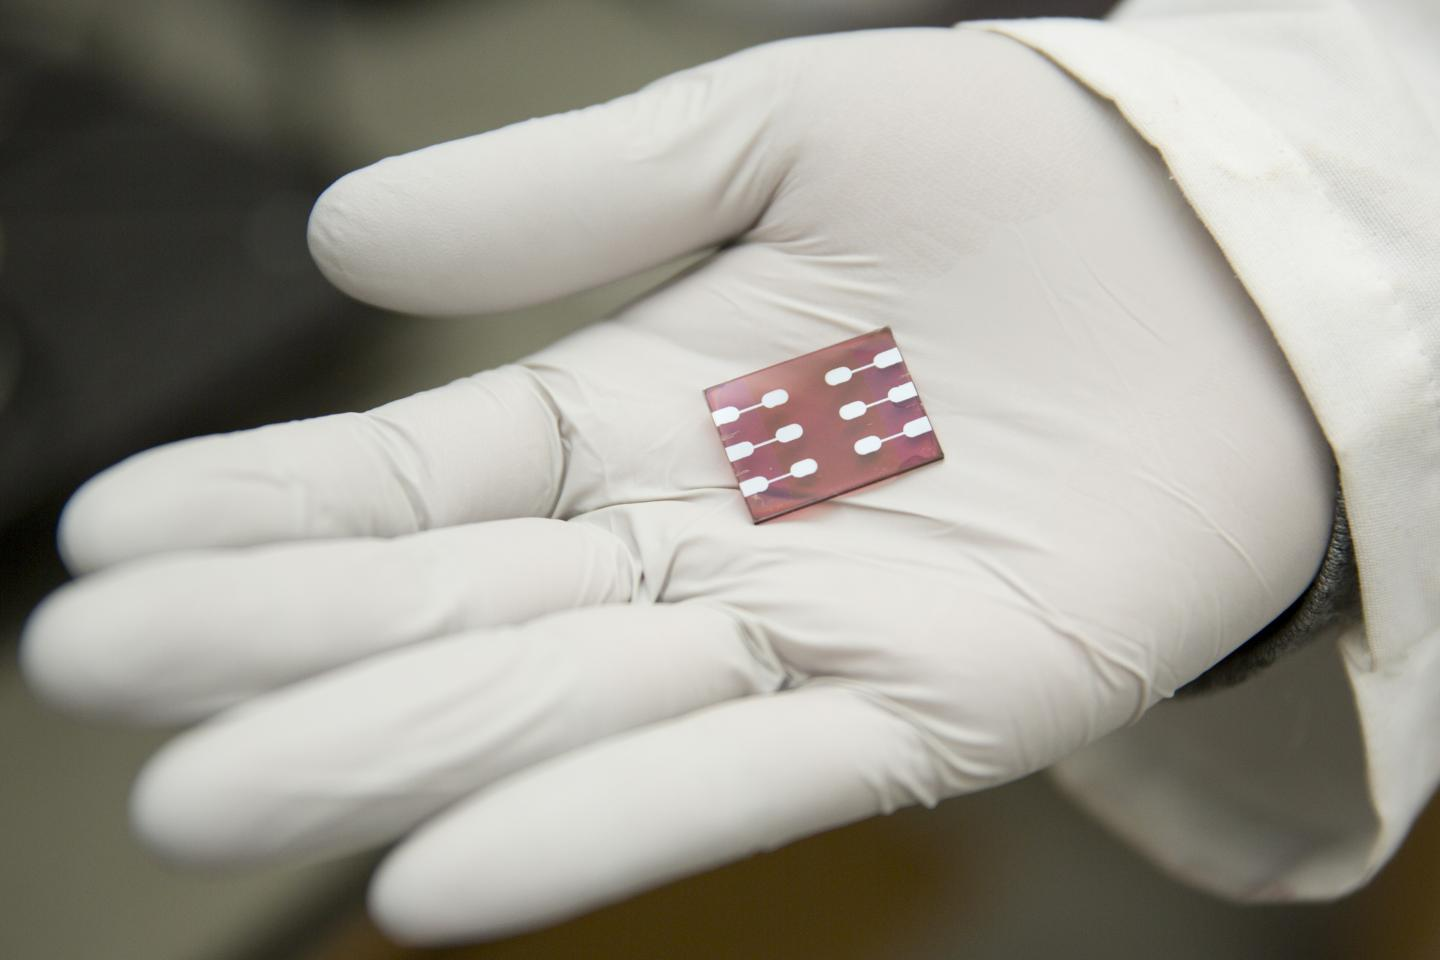 Solar cell efficiency improved